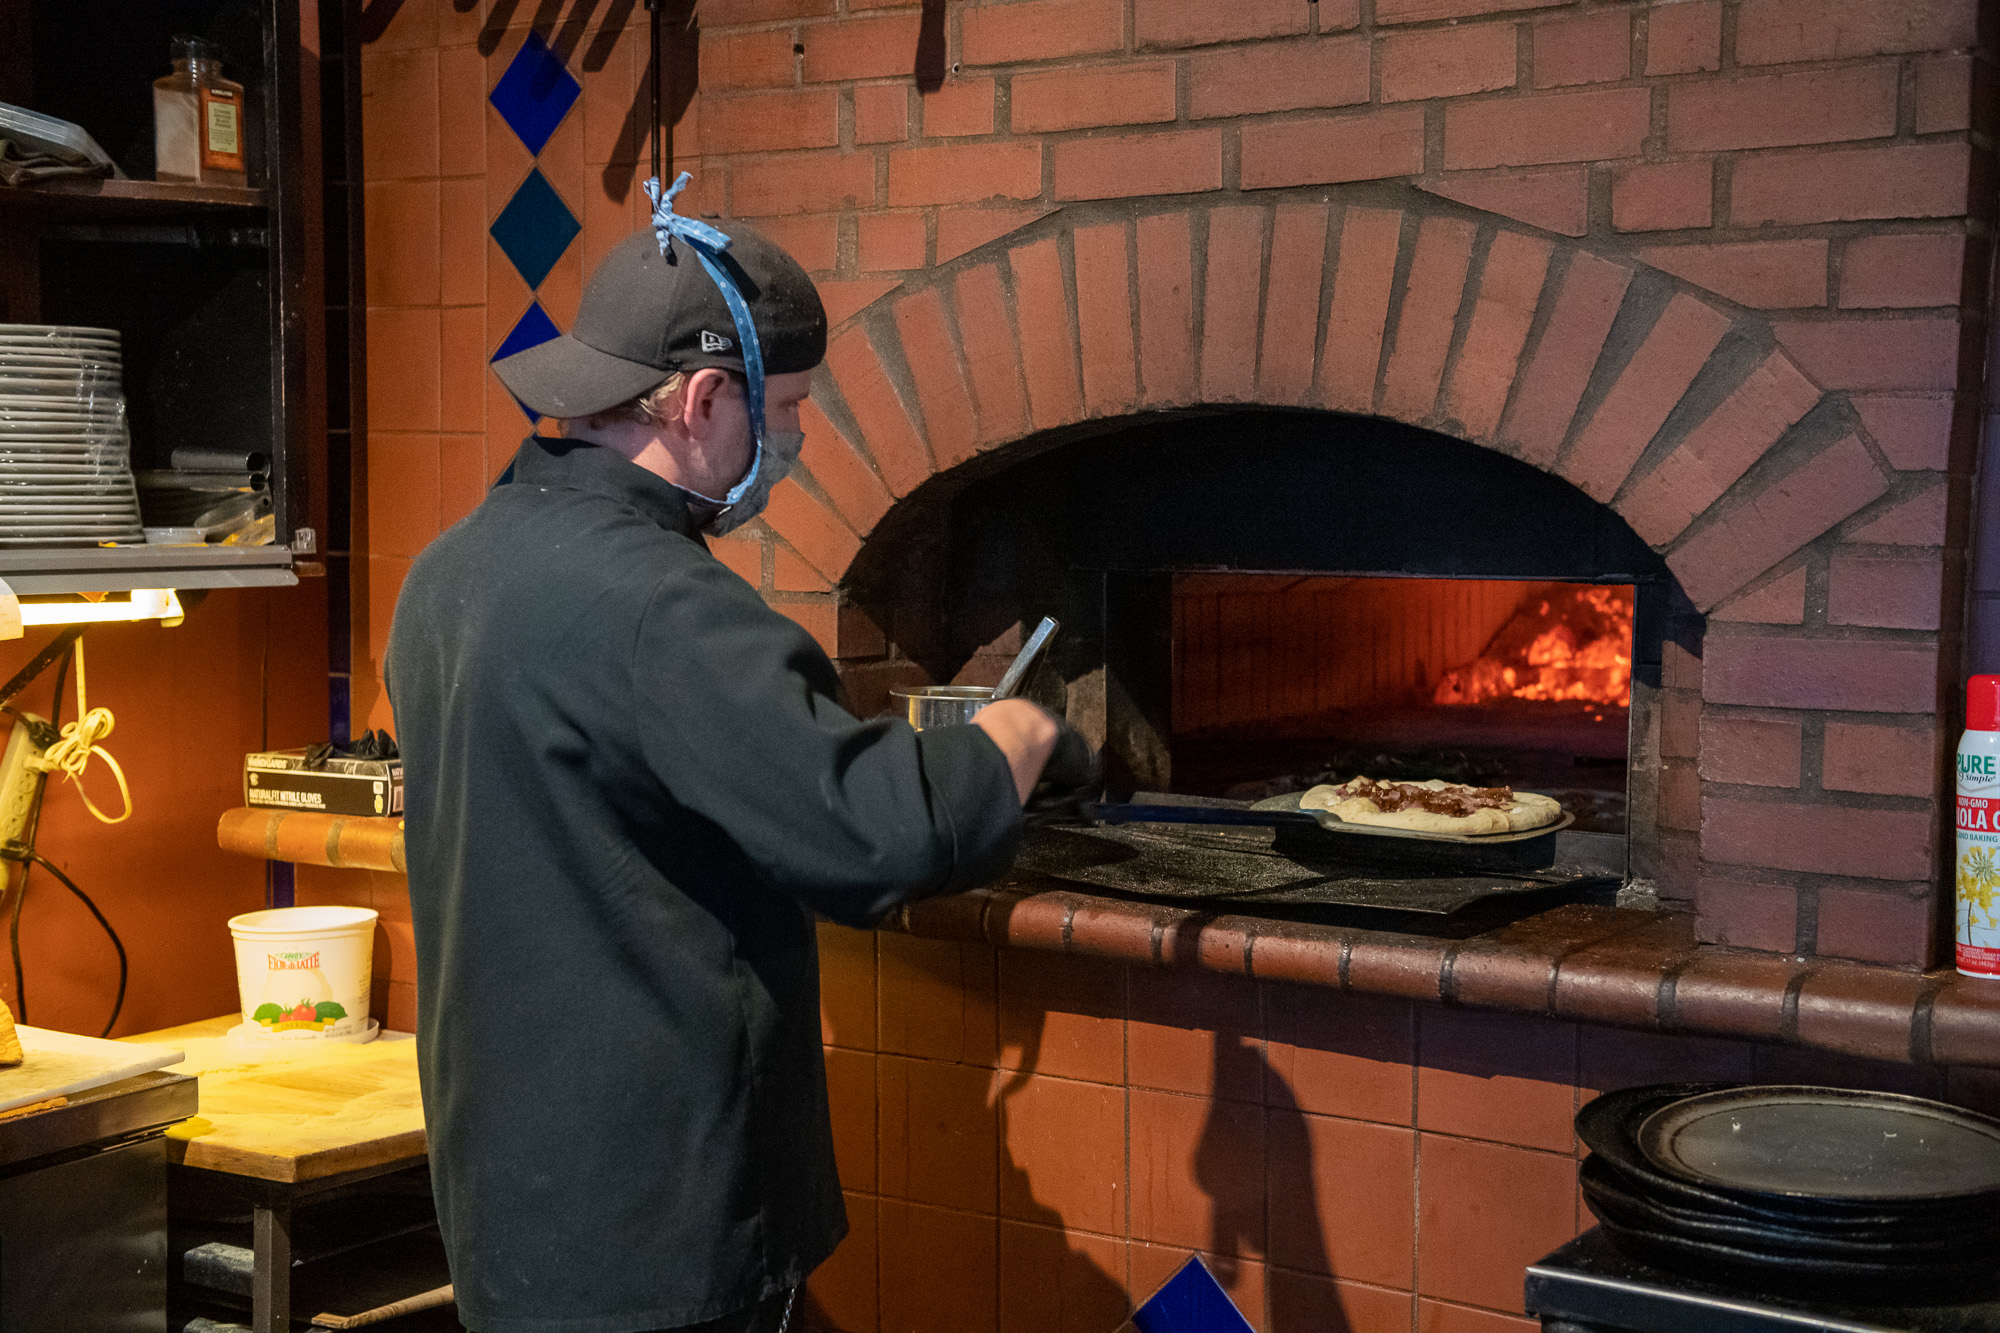 Chef and Manager of Brick and Fire Jeremy Wadlington checks a pizza in the wood fire oven Friday night for a take out order. The restaurant will reopen for dine in service on Wednesday. Wadlington said the restaurant and staff were ready to reopen and really need the people to come back.